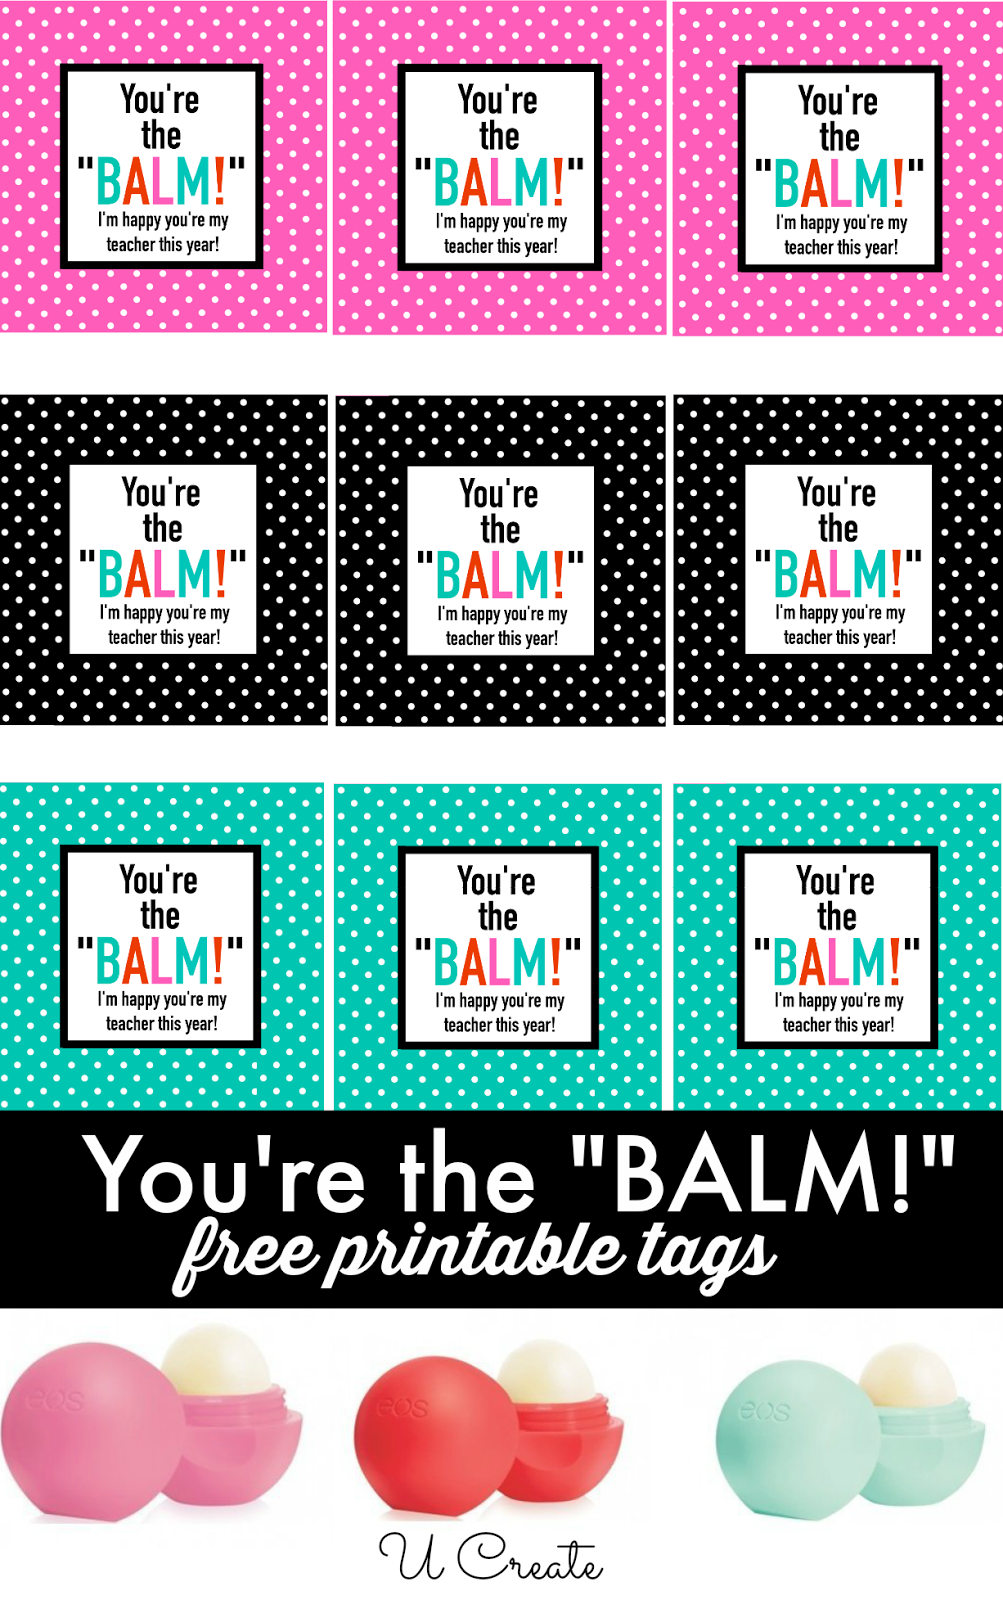 image relating to You're the Balm Free Printable known as Totally free Printables: Youre the balm Suitable Recommendations - Faculty and